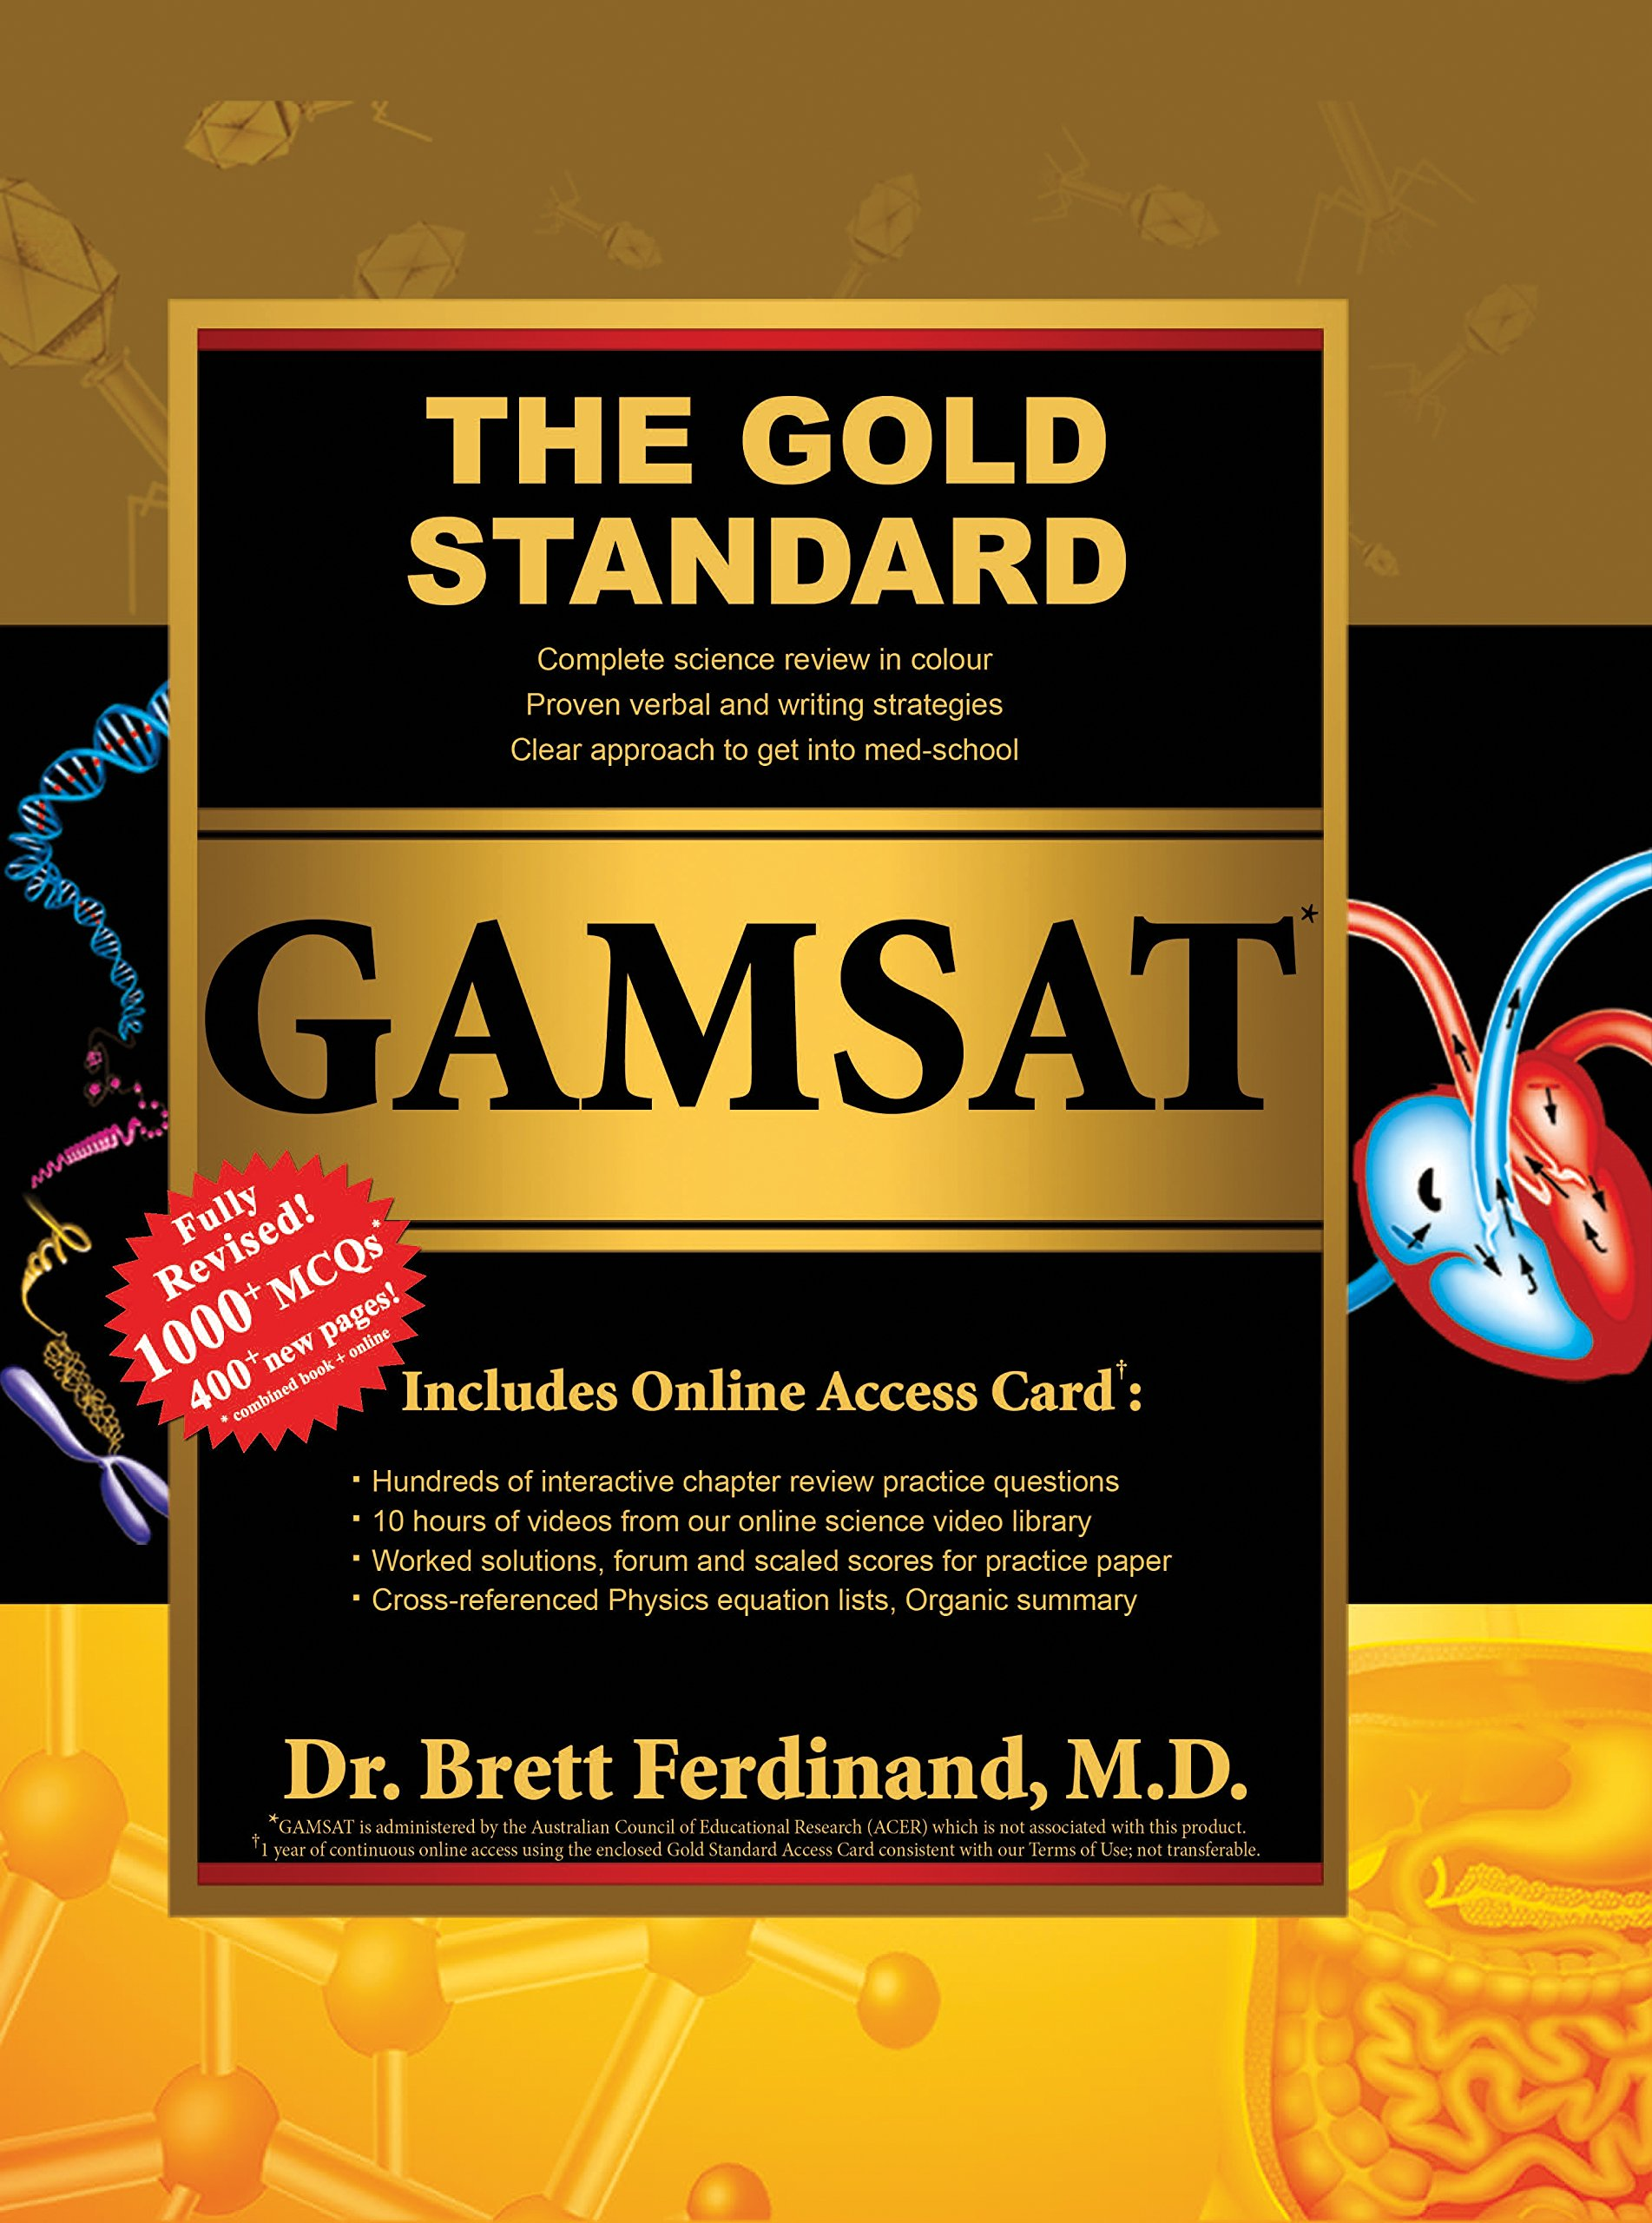 The Gold Standard Gamsat Textbook 20162017 Edition Is One Gamsat Book That  Replaces Them All!: Amazon: Brett Ferdinand Dr: 9781927338285: Books